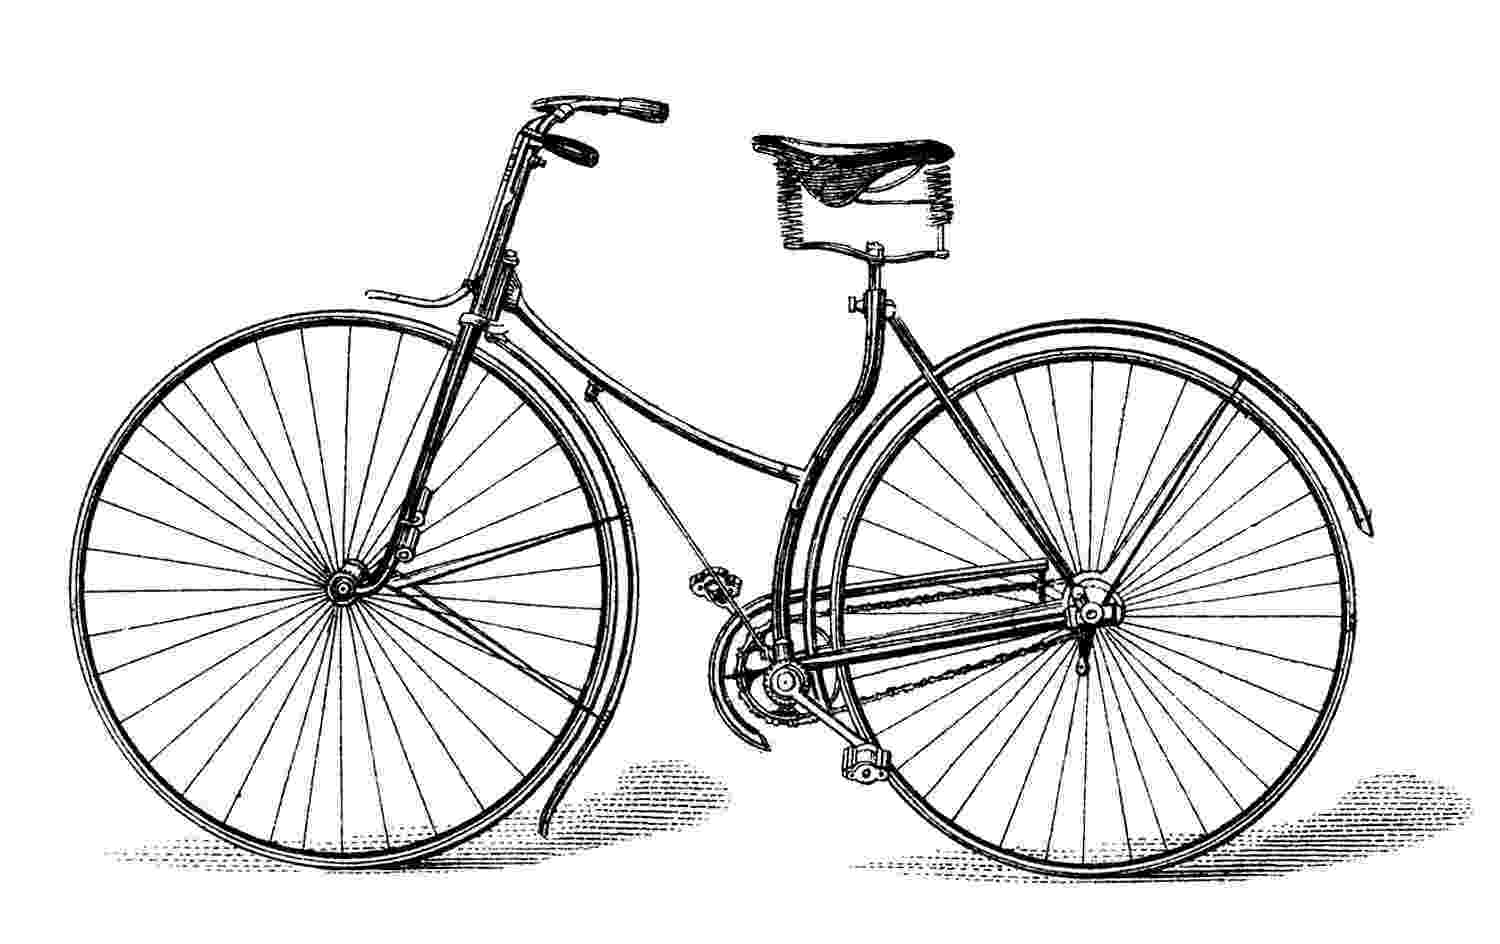 bicycle sketch free vector downloads vintage bicycle the graphics fairy sketch bicycle